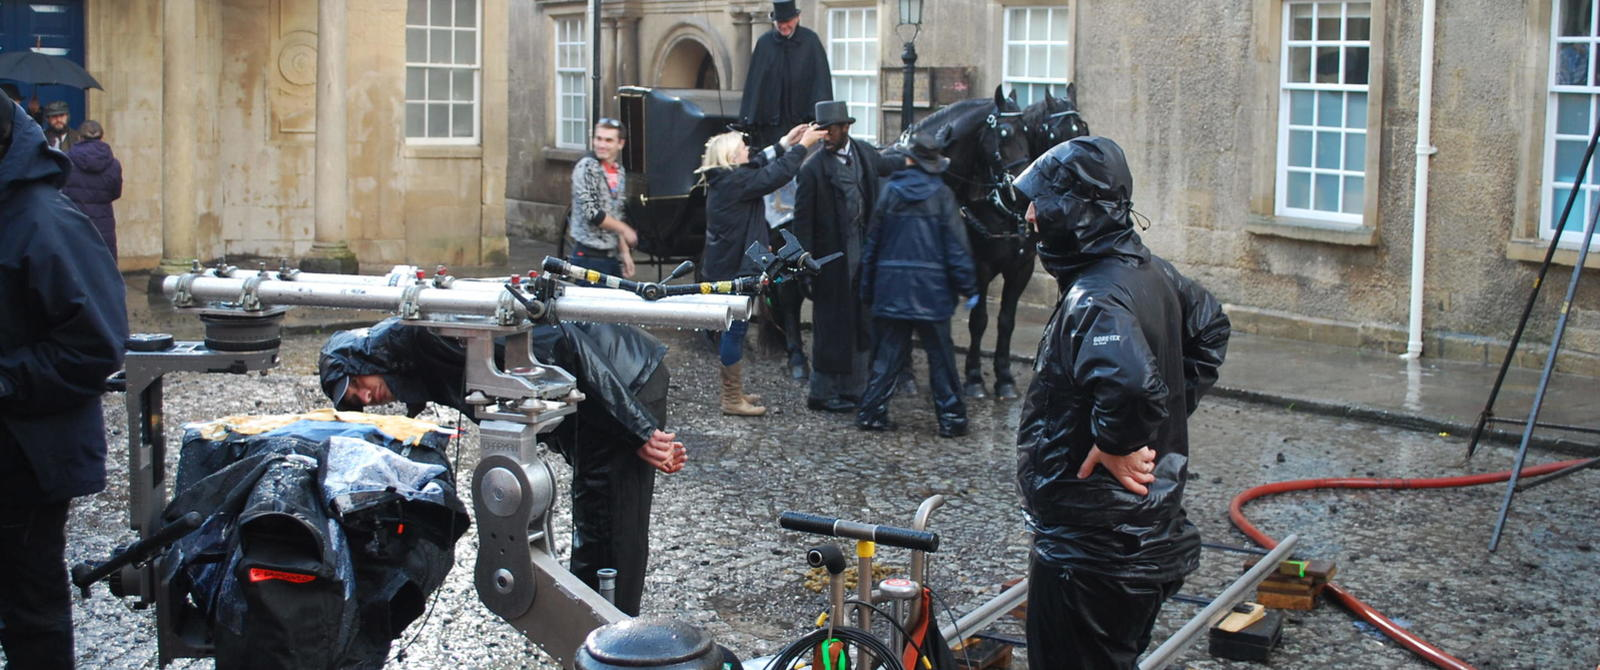 image:filming in Hot Bath Street